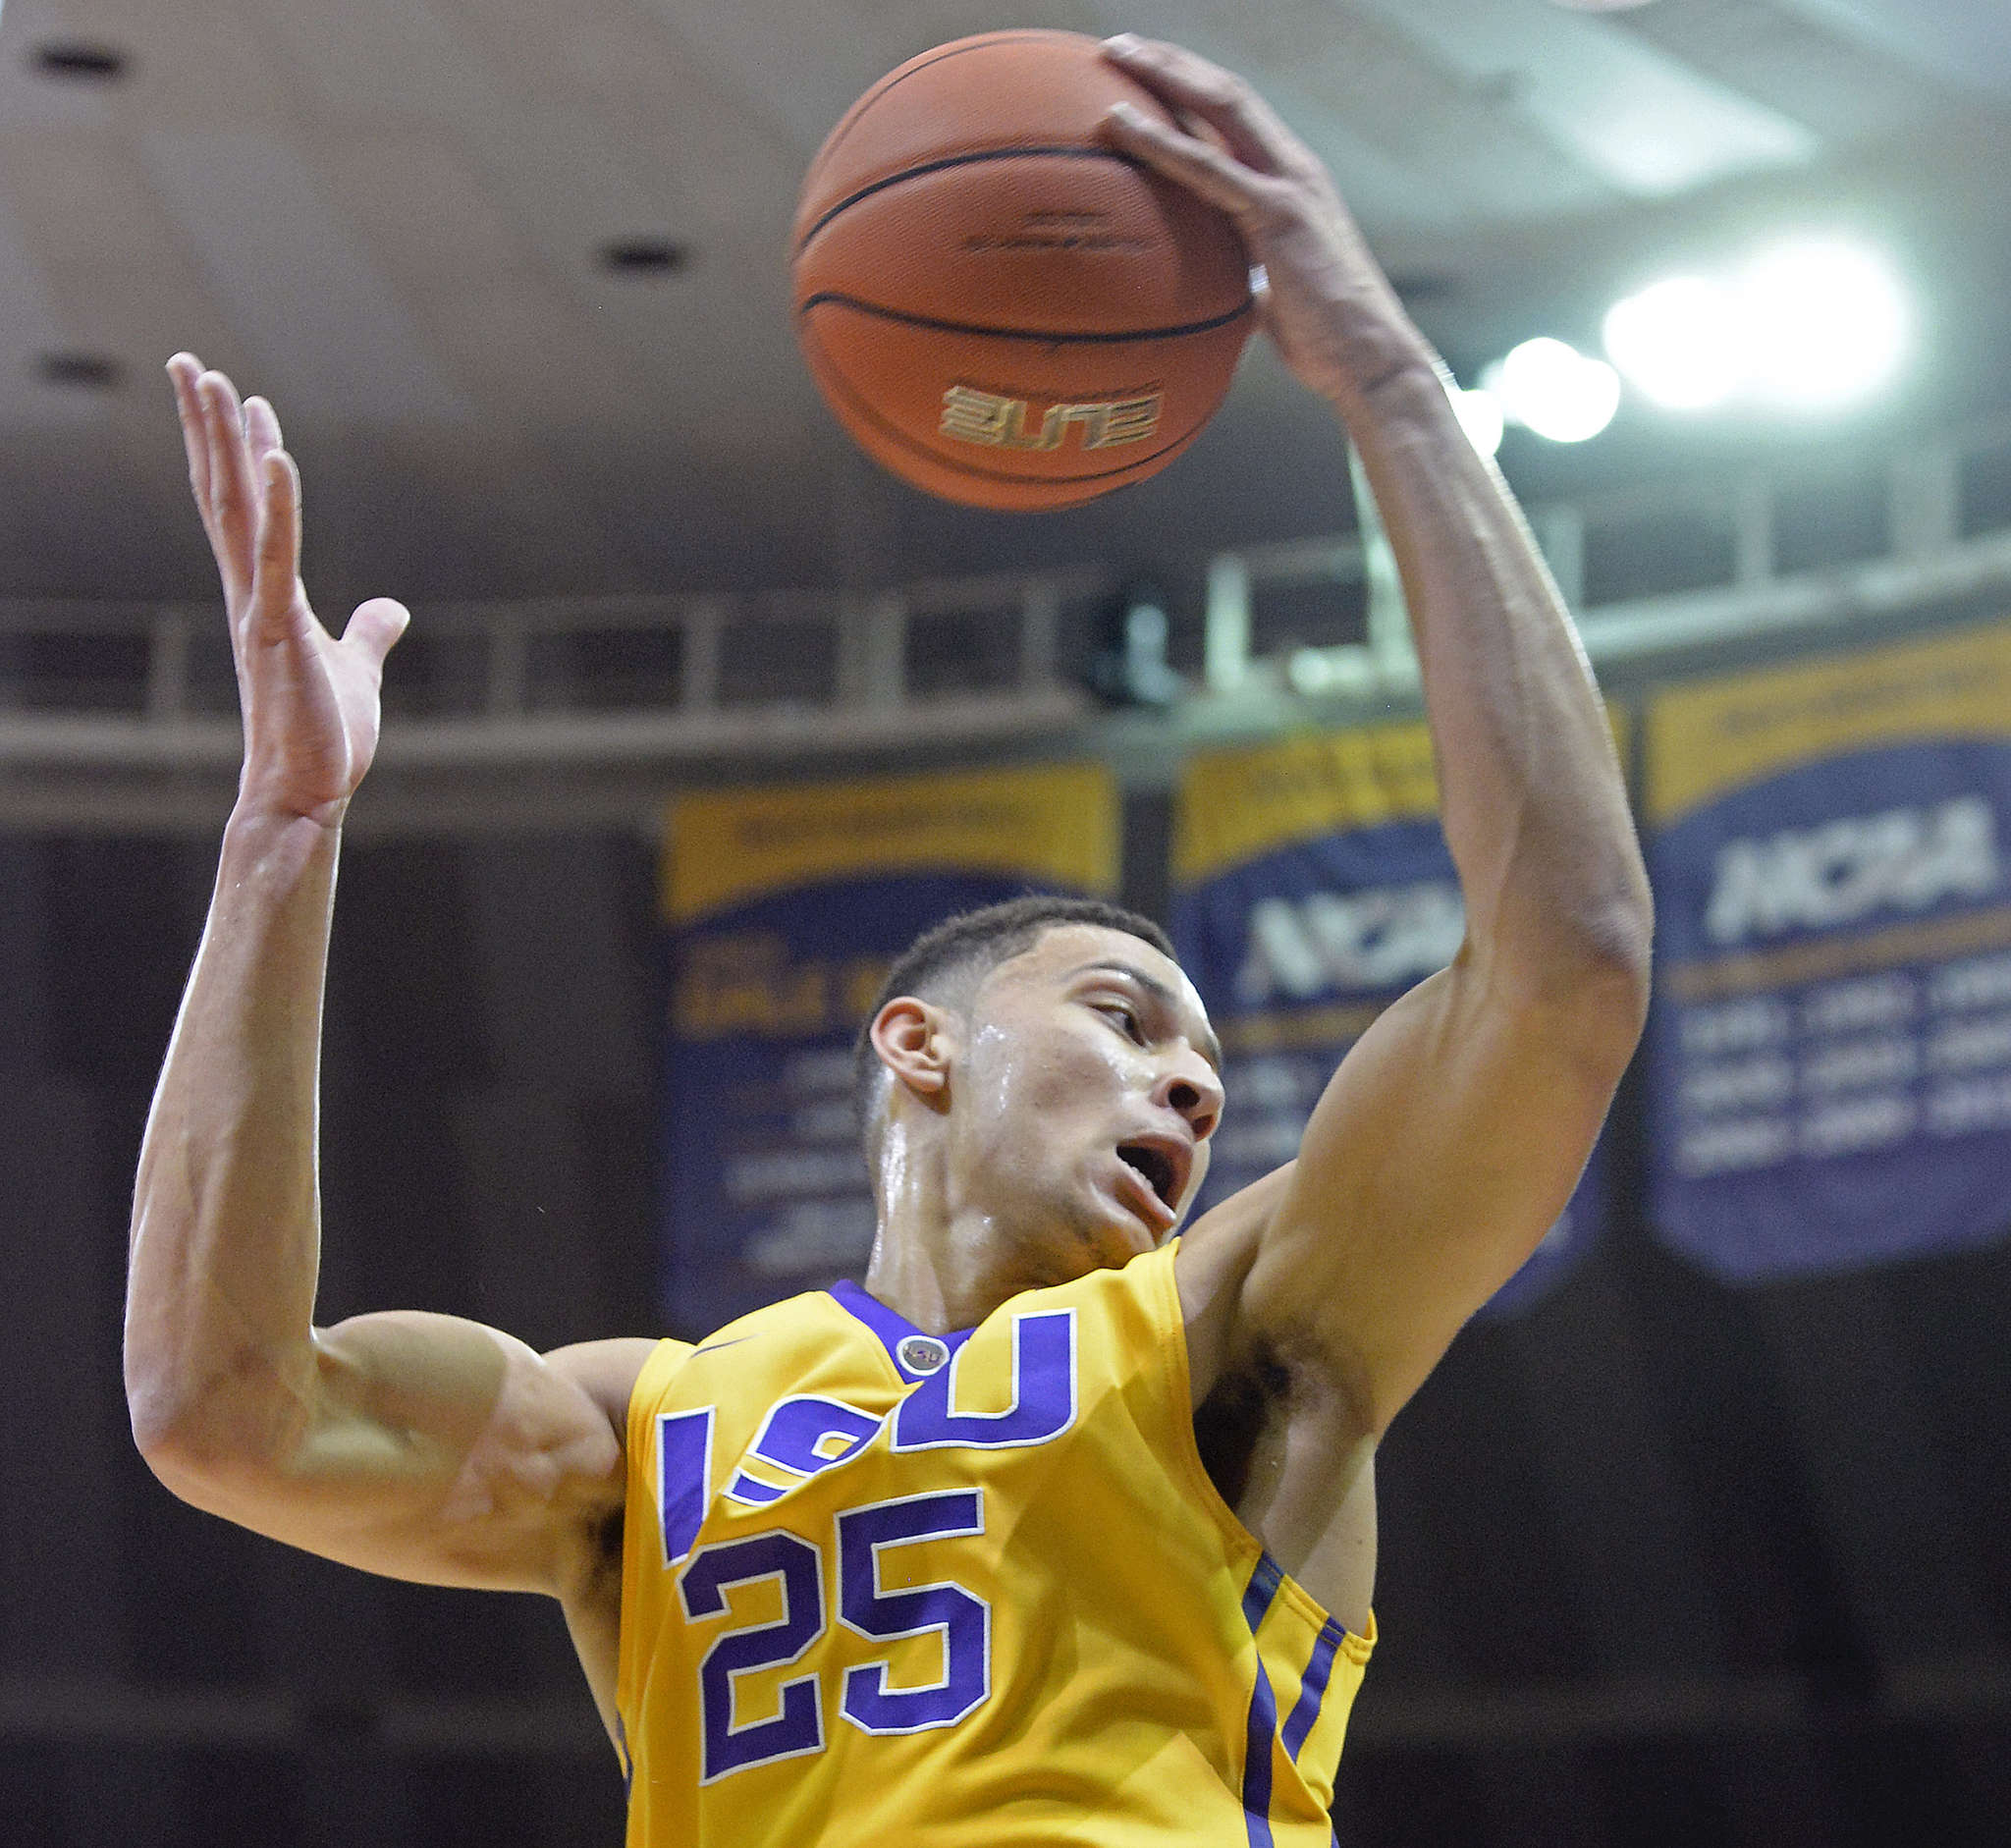 LSU freshman Ben Simmons is expected to be the top pick in the 2016 NBA draft. ASSOCIATED PRESS